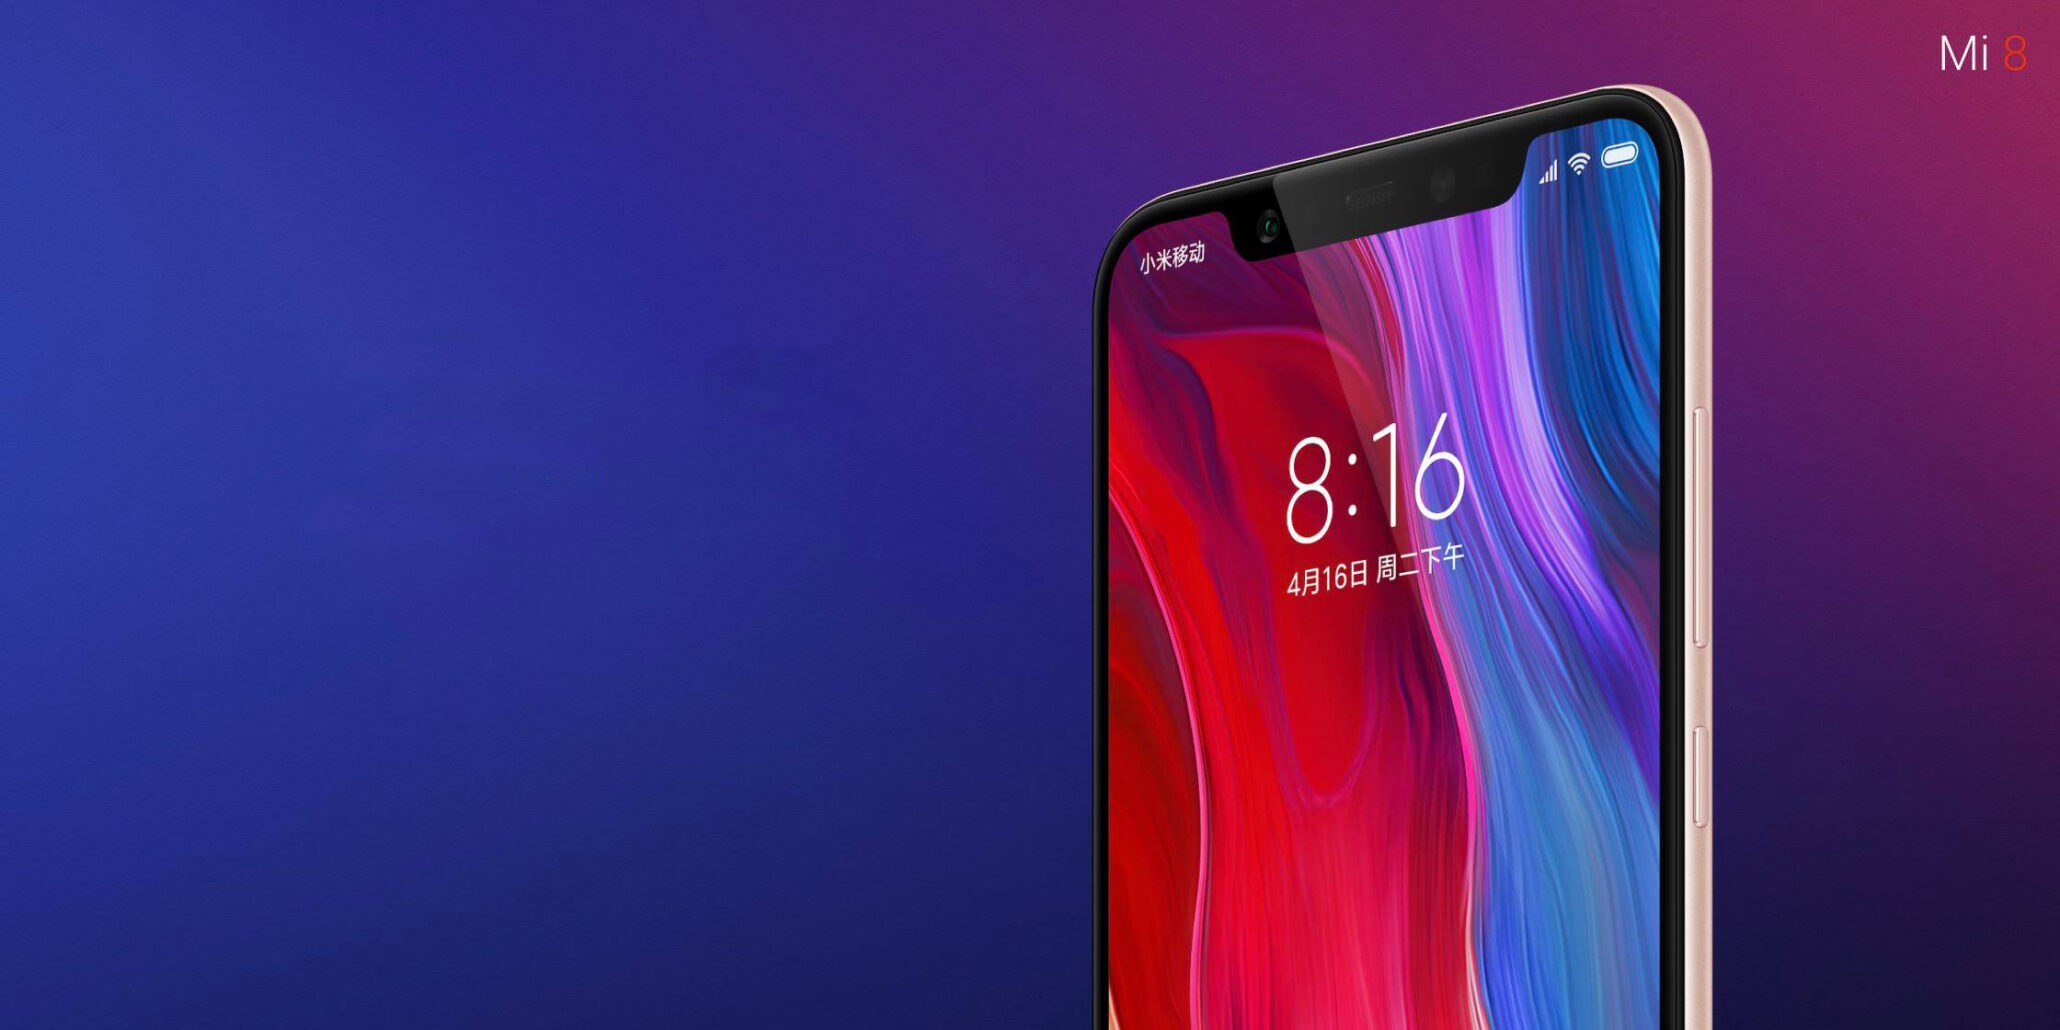 Xiaomi Mi 8 Unboxing A Closer Look At The Flagship Its Design And All Accessories That Come